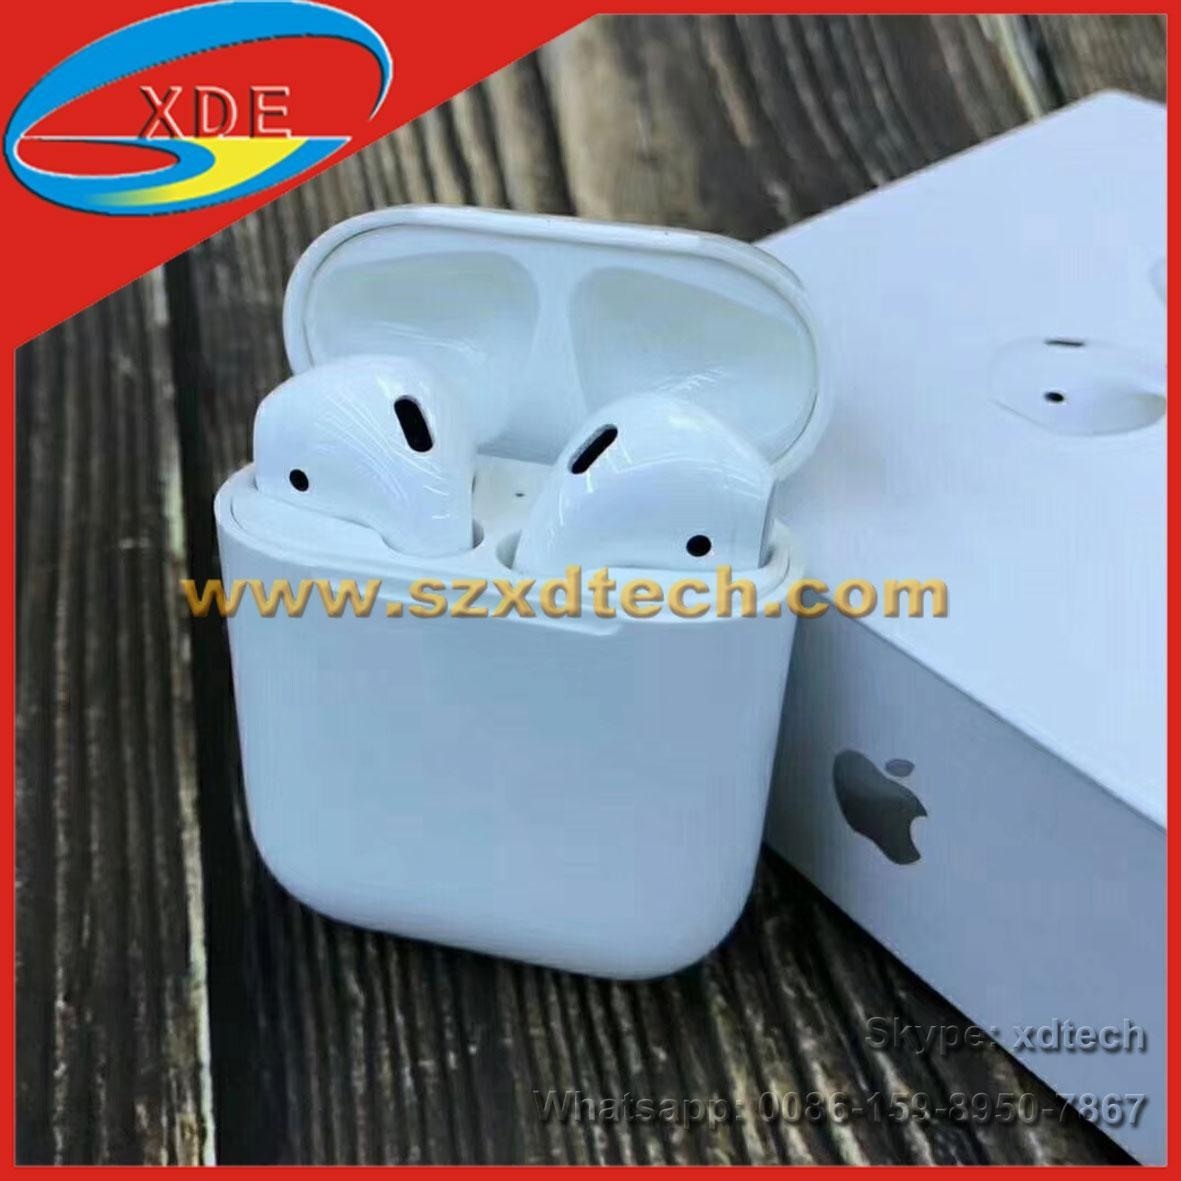 Best Quality Apple Airpods 2 1:1 Copy